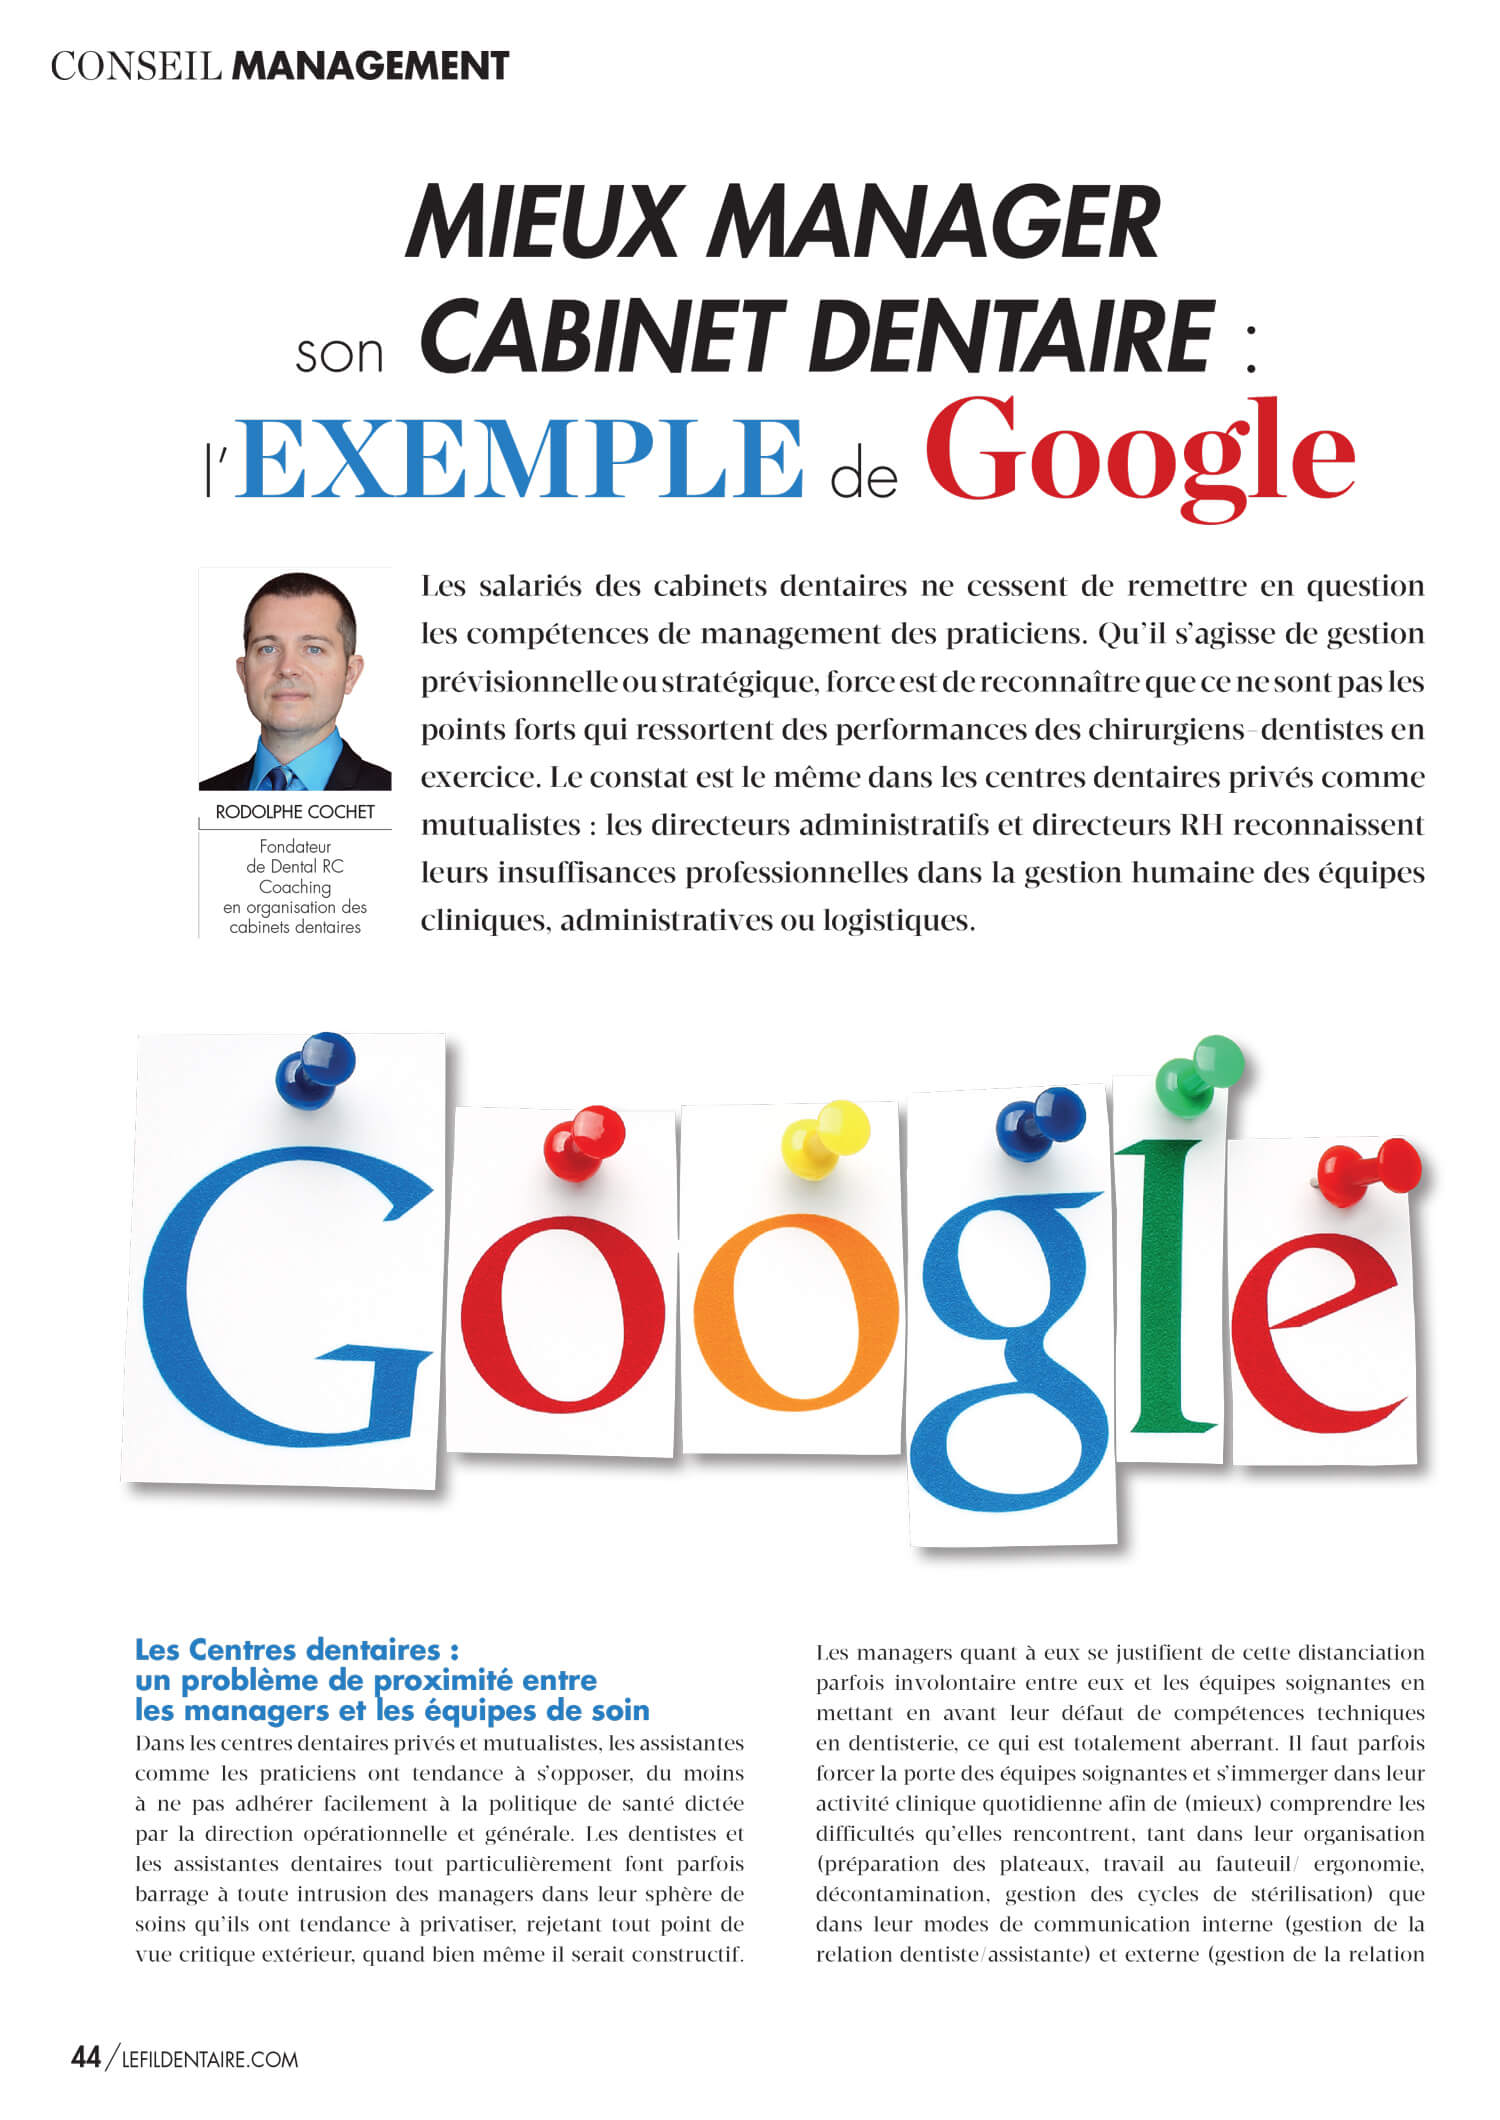 Mieux-manager-son-cabinet-dentaire-Google-Rodolphe-COCHET-coaching.jpg